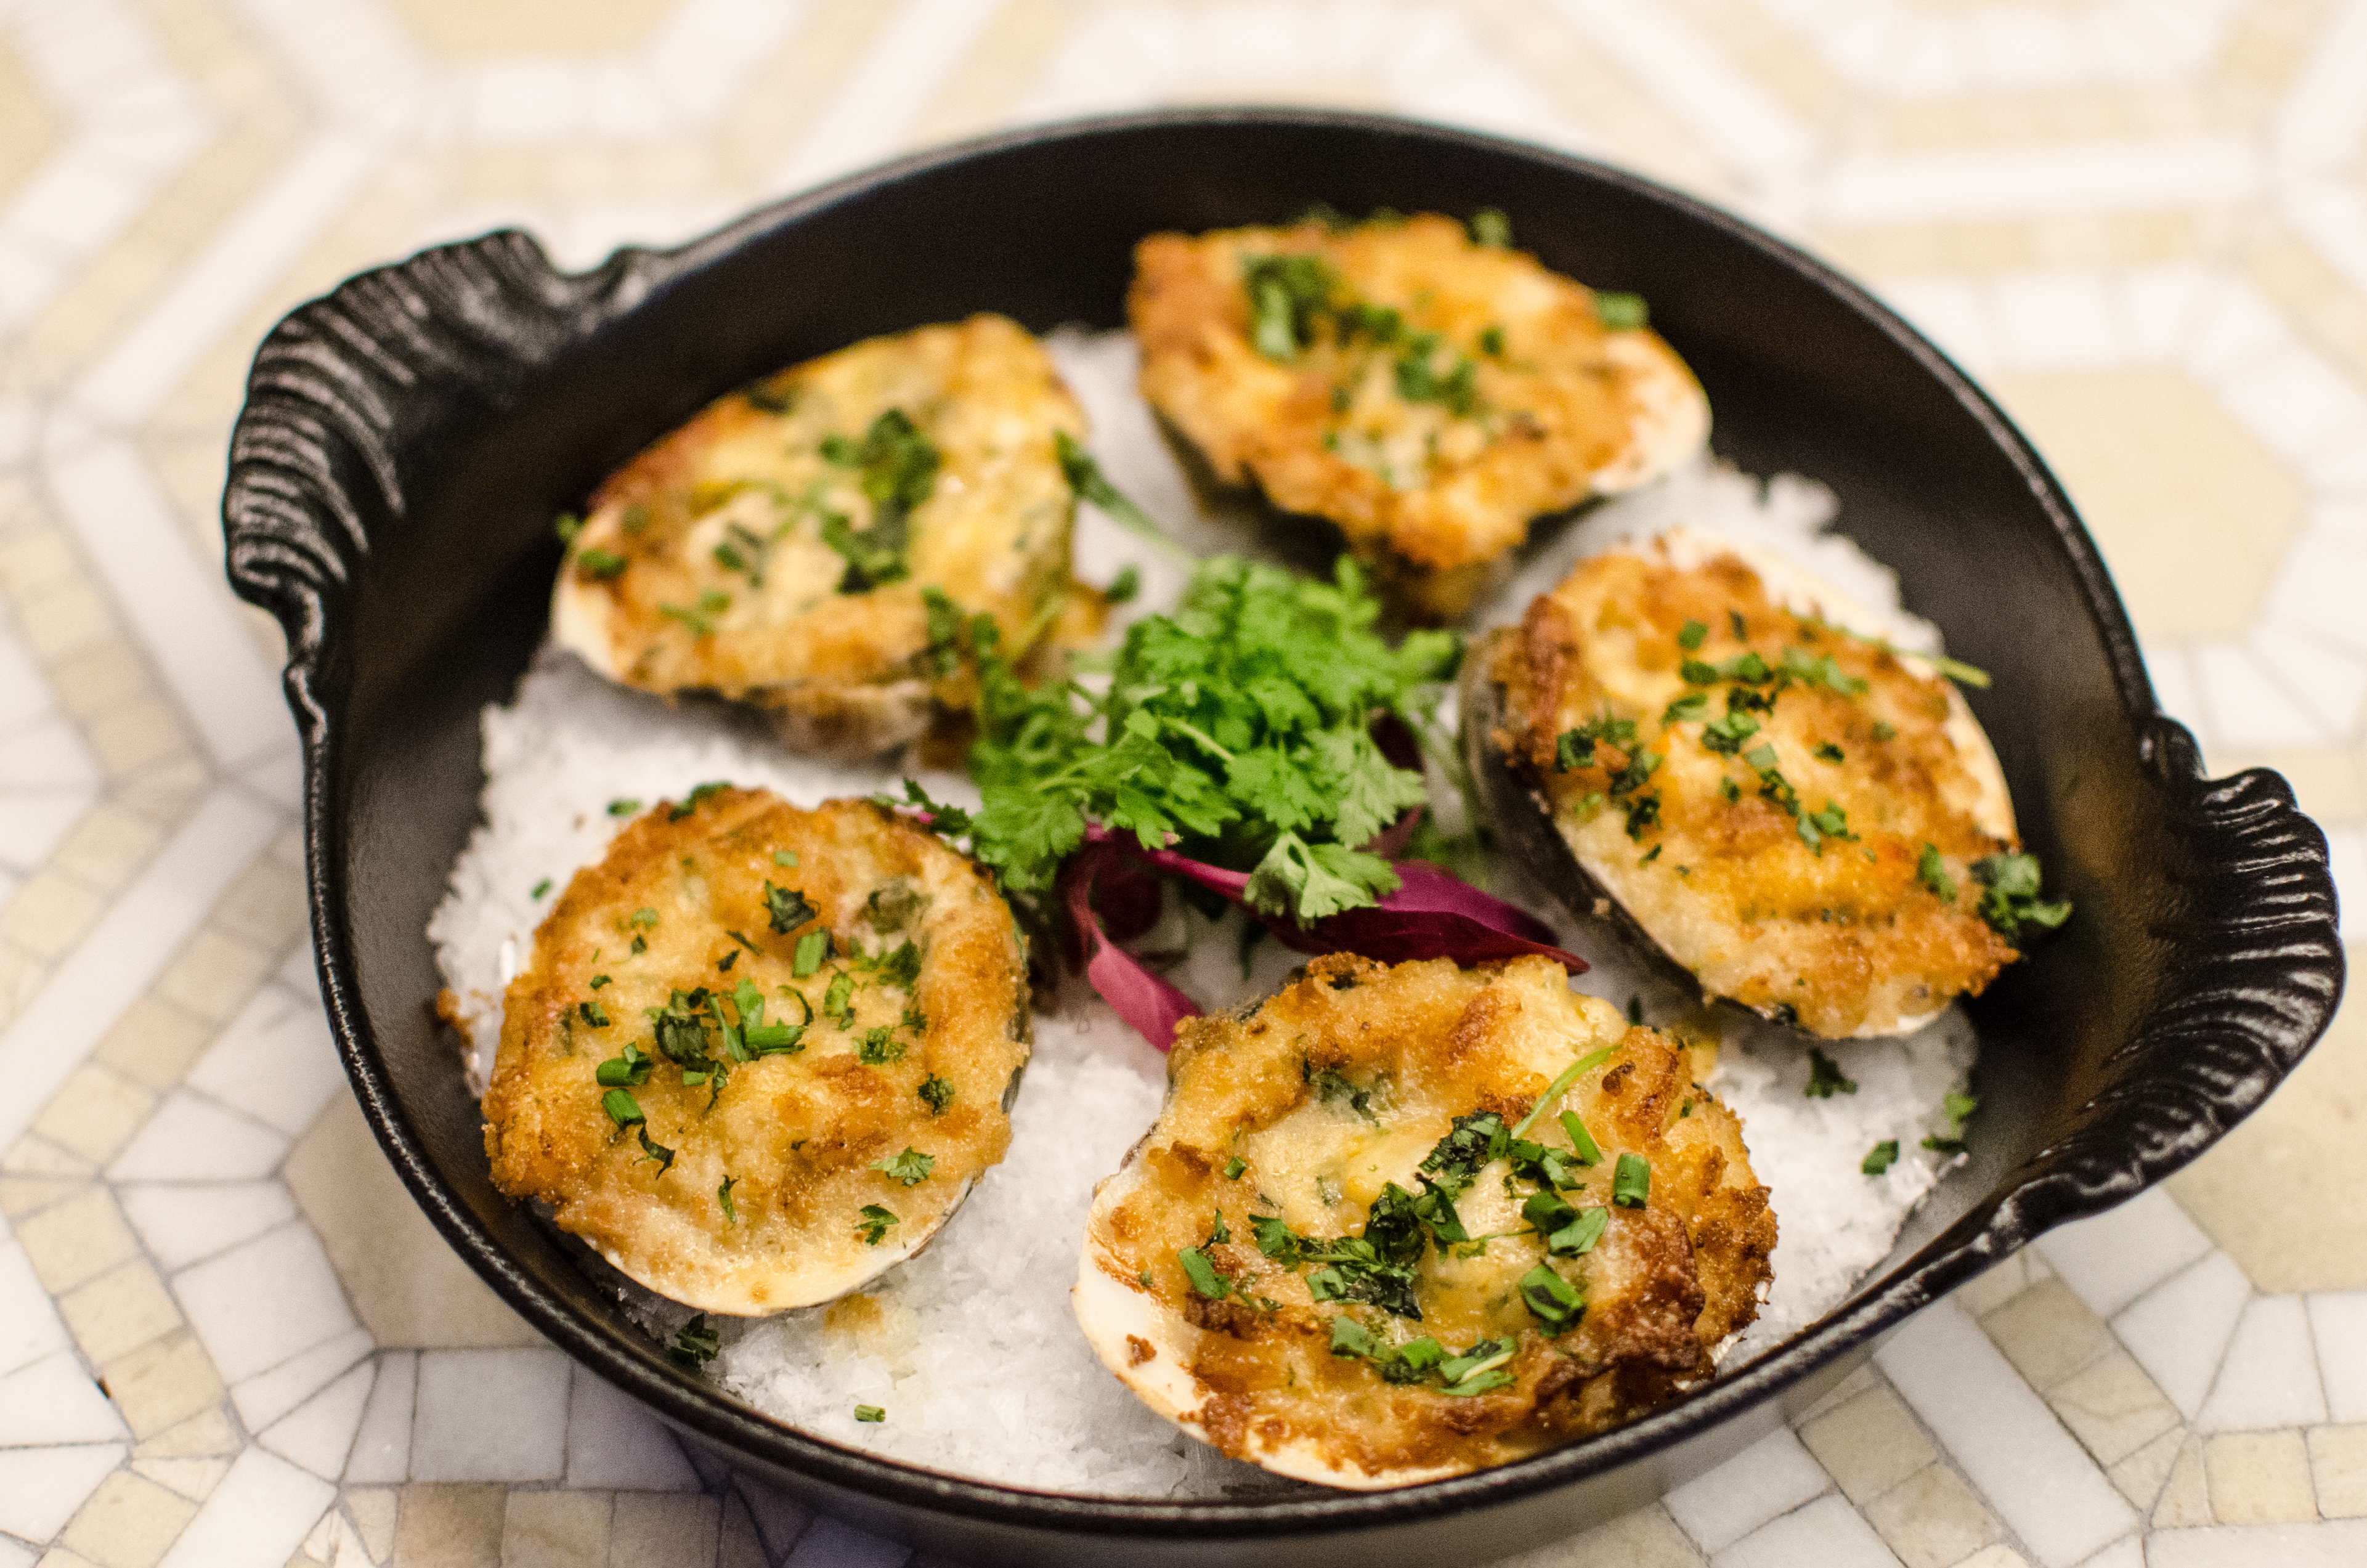 Baked clams topped with cheese, herbs, and spices are arranged on a bed of salt in a small cast iron pan.